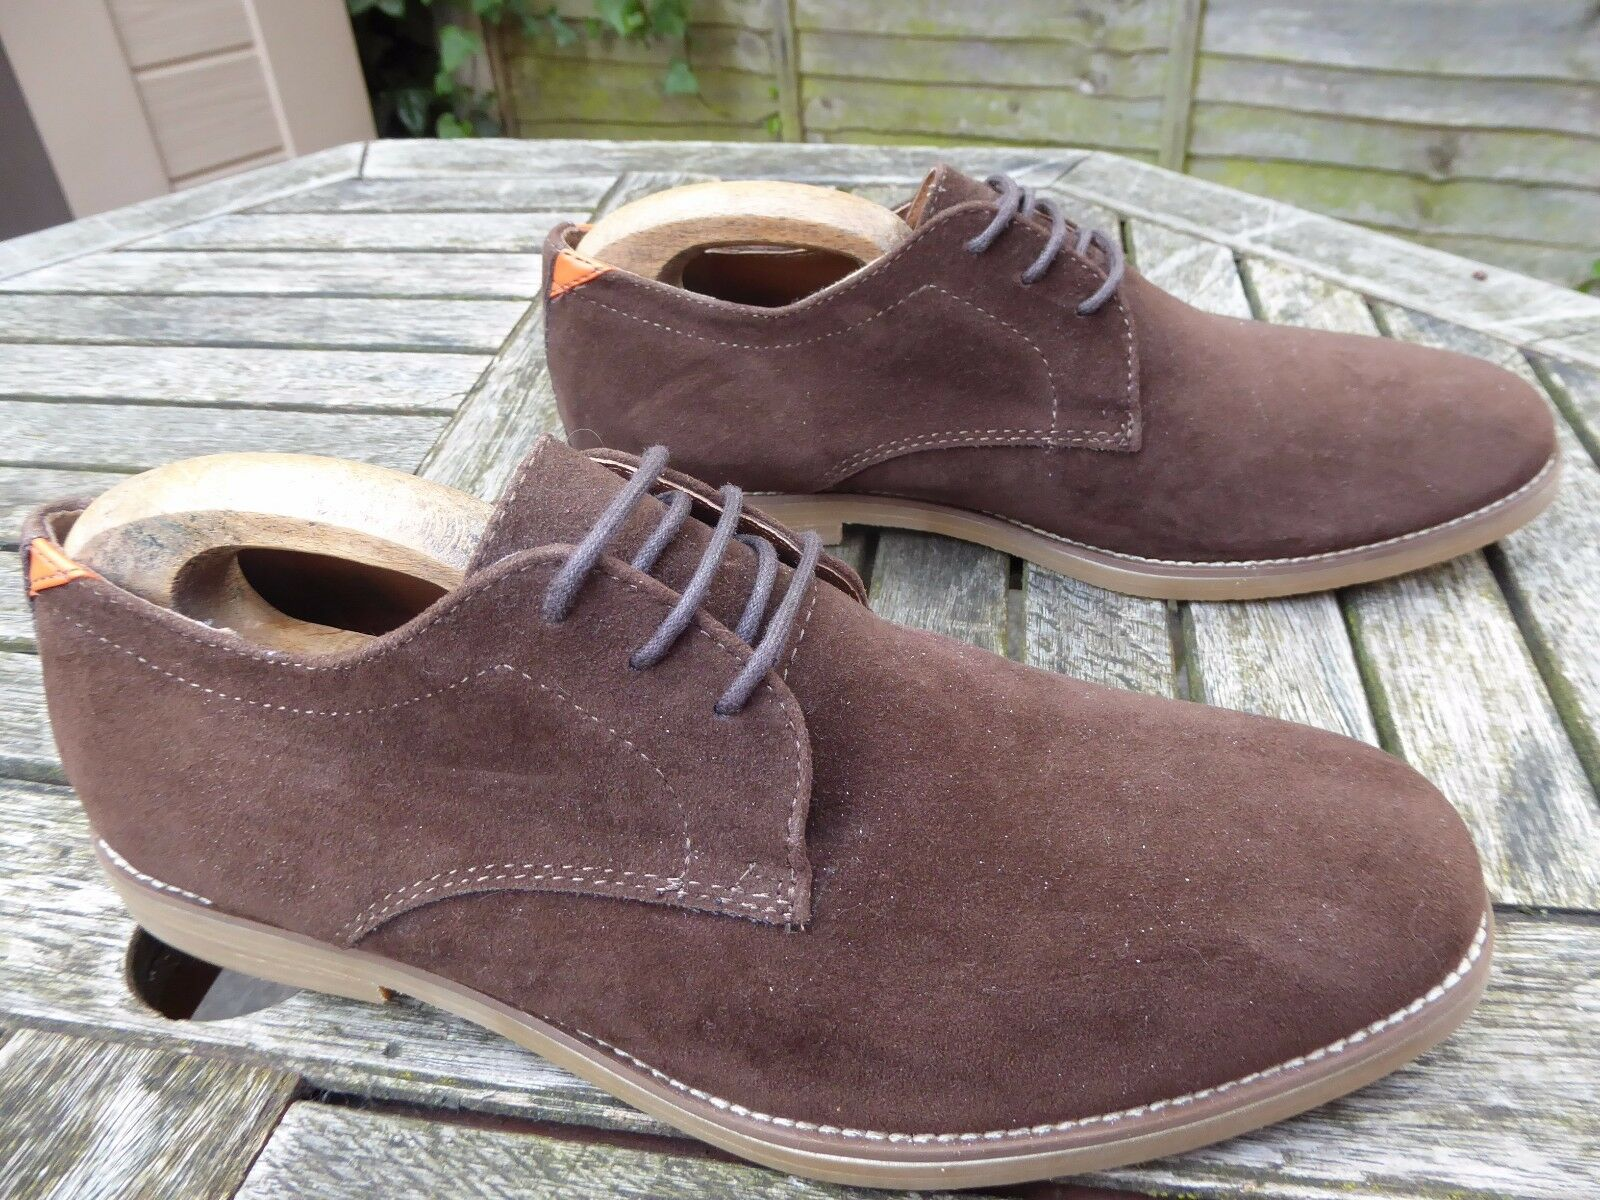 Mens KG by KURT GEIGER suede shoes - size 44 BNWOB